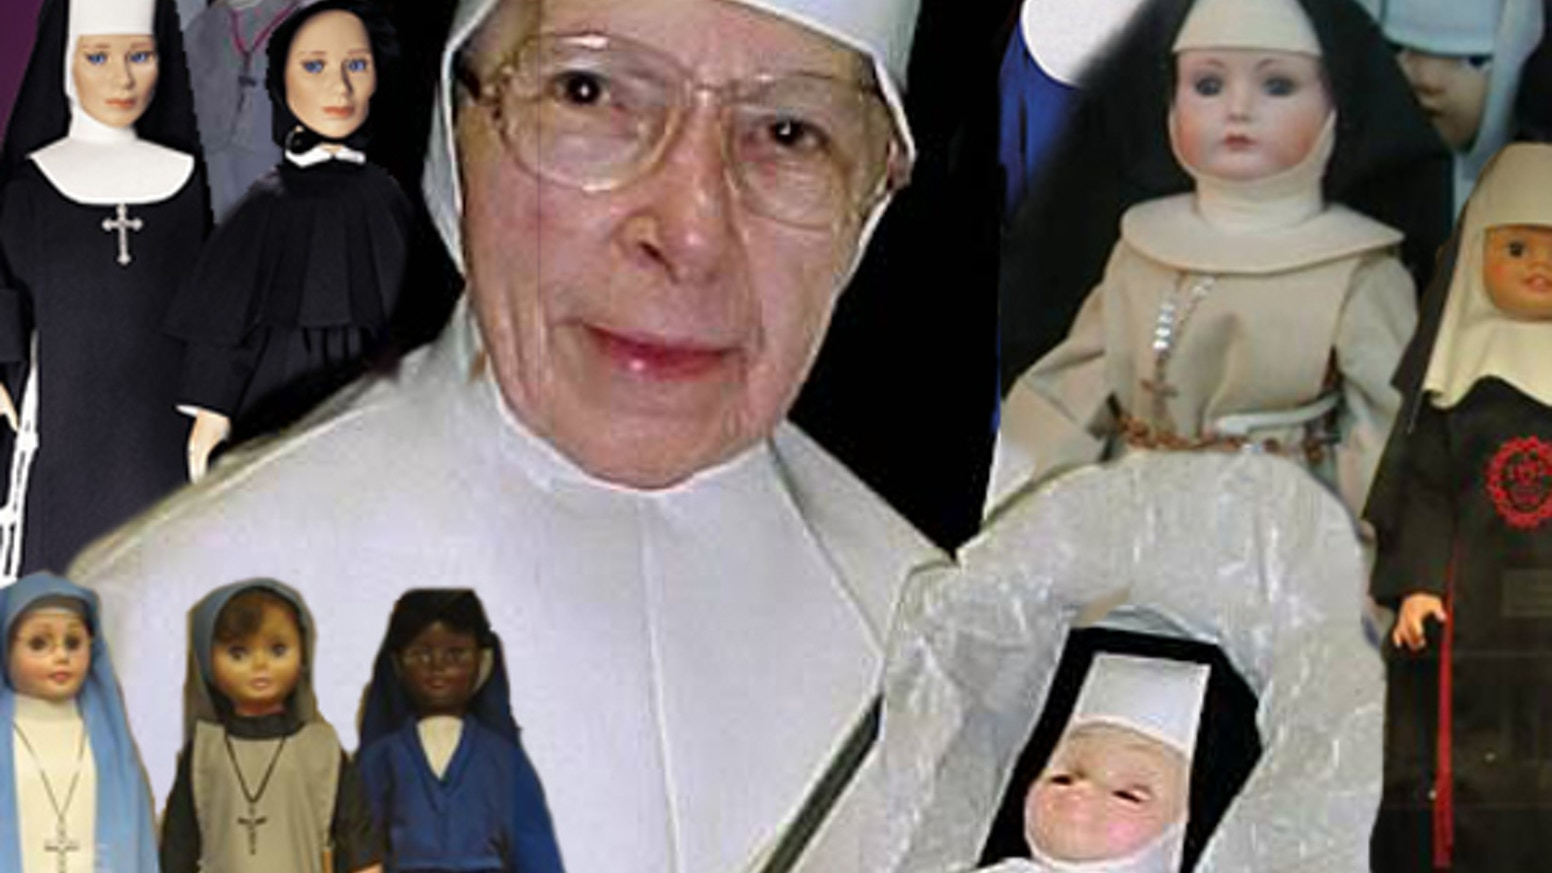 Open source archive of patterns for nuns habits by julia sherman create an archive of sewing patterns for lost adult nuns habits from a collection of rare nun dolls jeuxipadfo Images